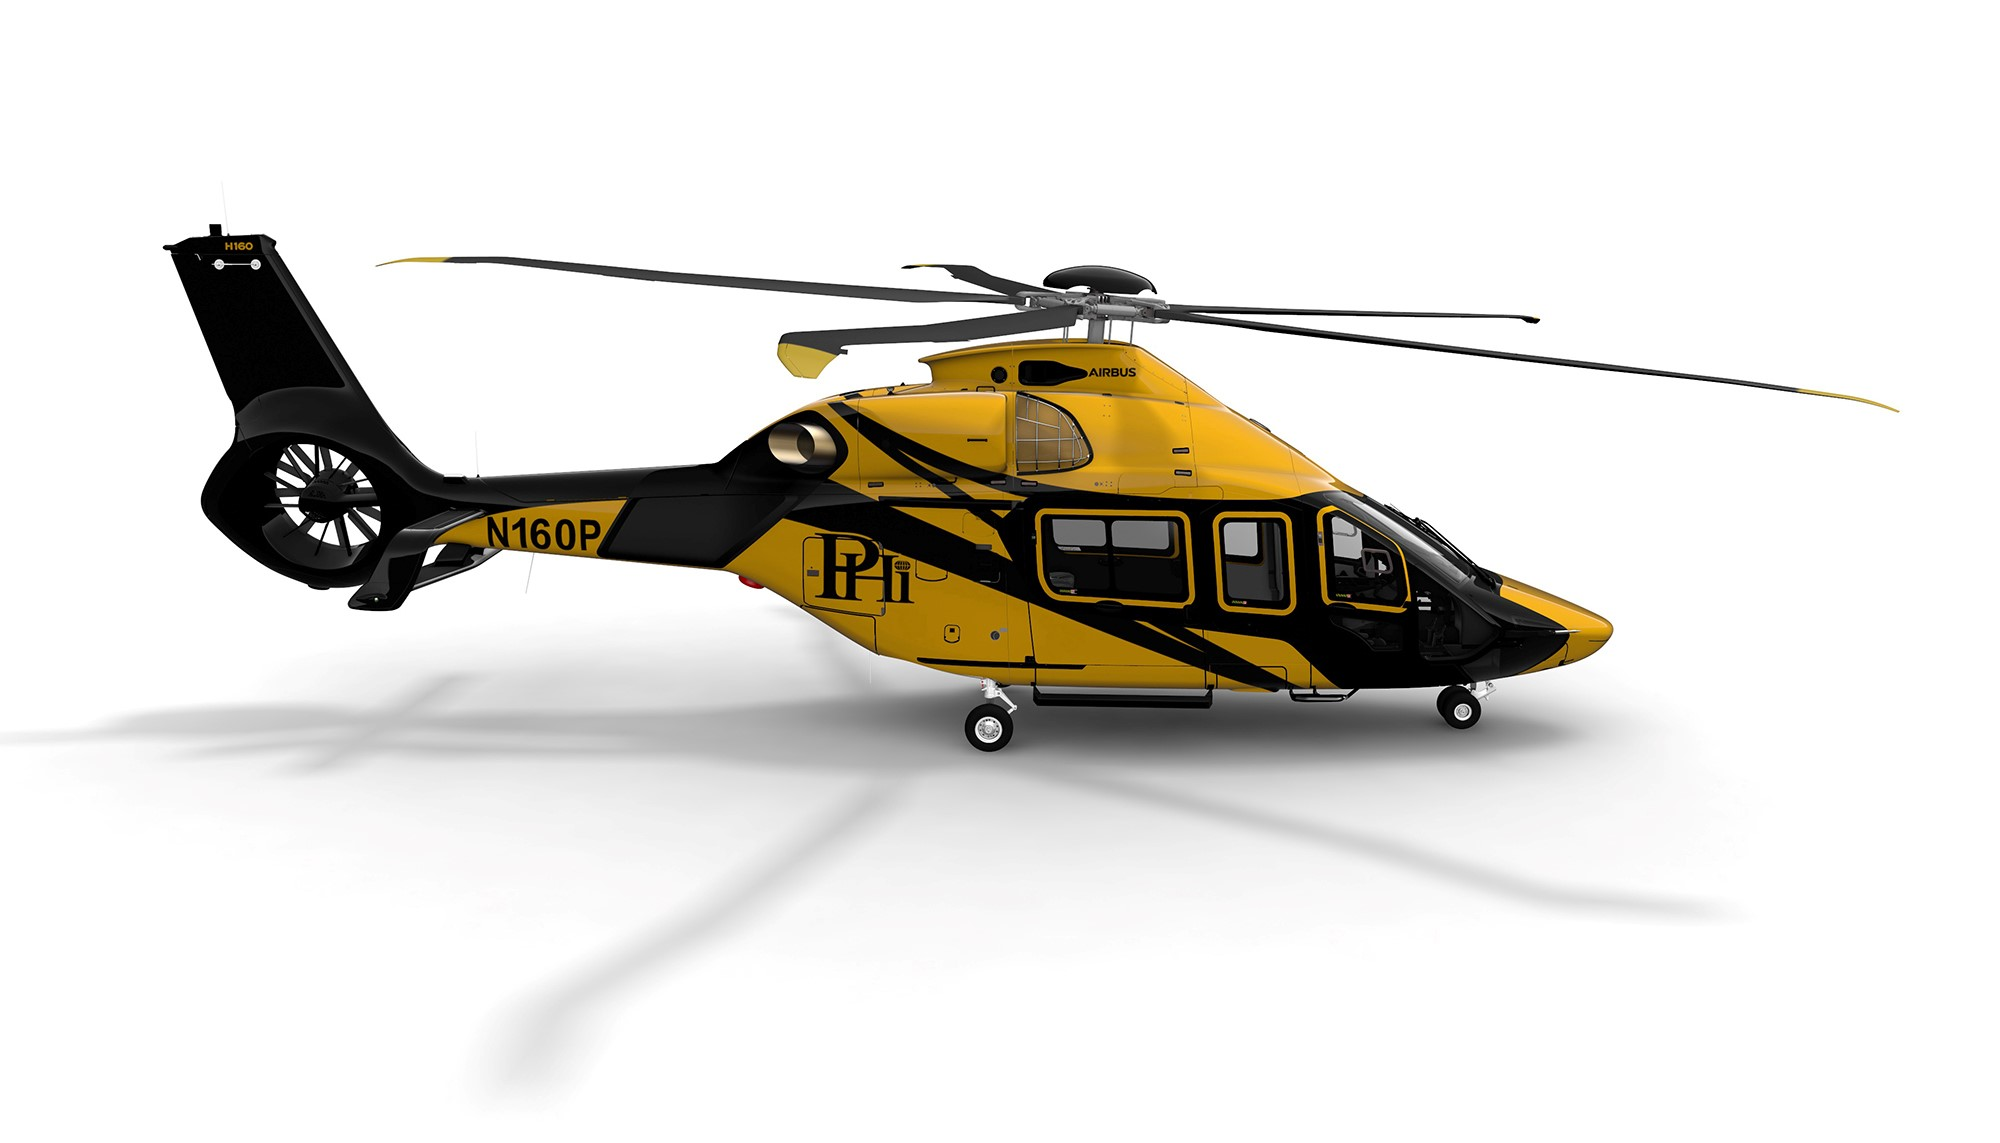 Shell selects H160 for operation by PHI in Gulf of Mexico